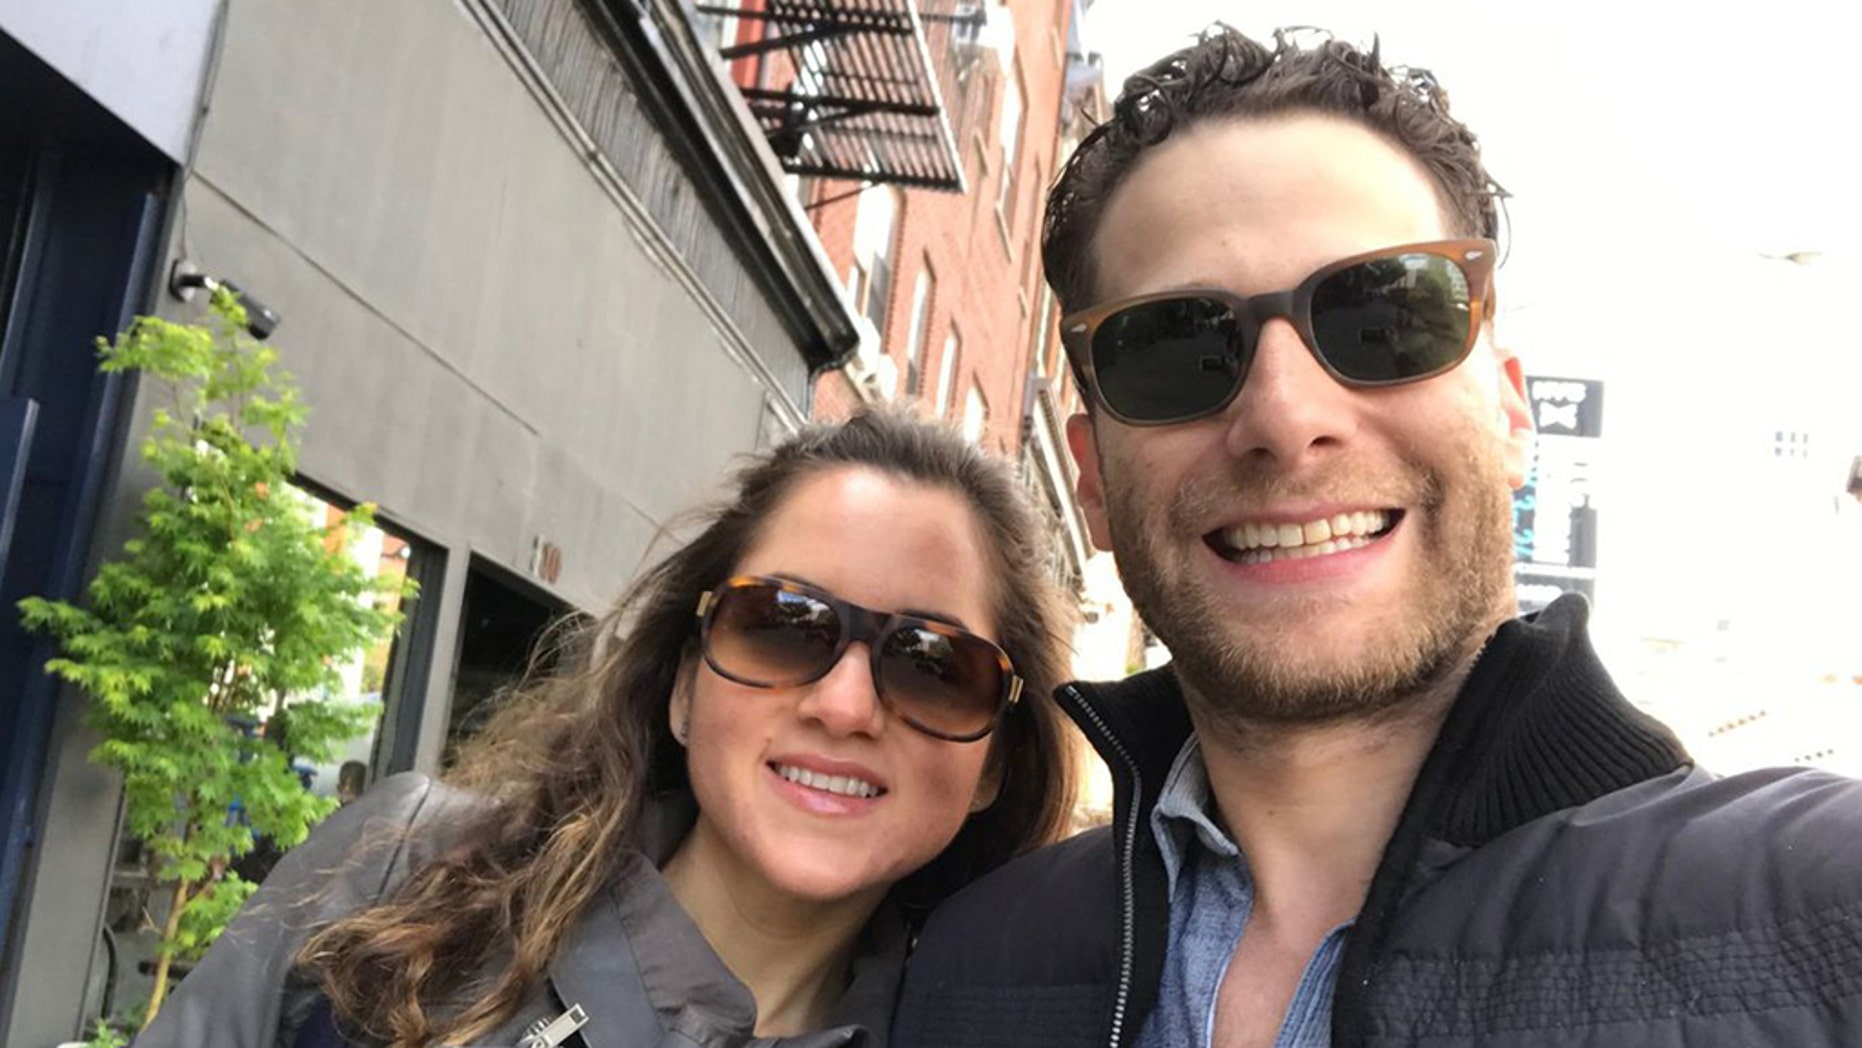 Jeremy Goldberg and his wife Paola, both 35, were celebrating their anniversary when he was jumped by a crazed man in New York.